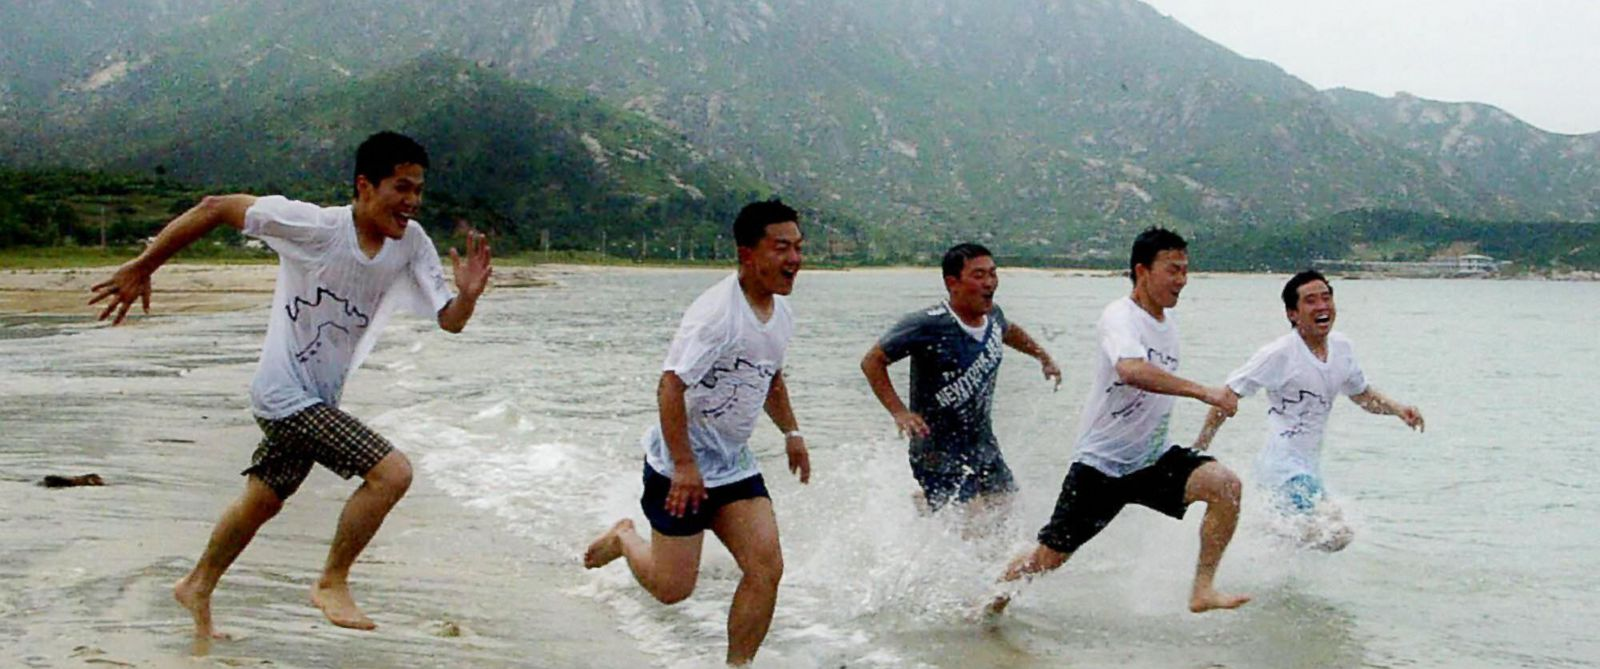 PHOTO: South Korean tourists on Kumgangsan beach in Kosung, North Korea, July 3, 2004.